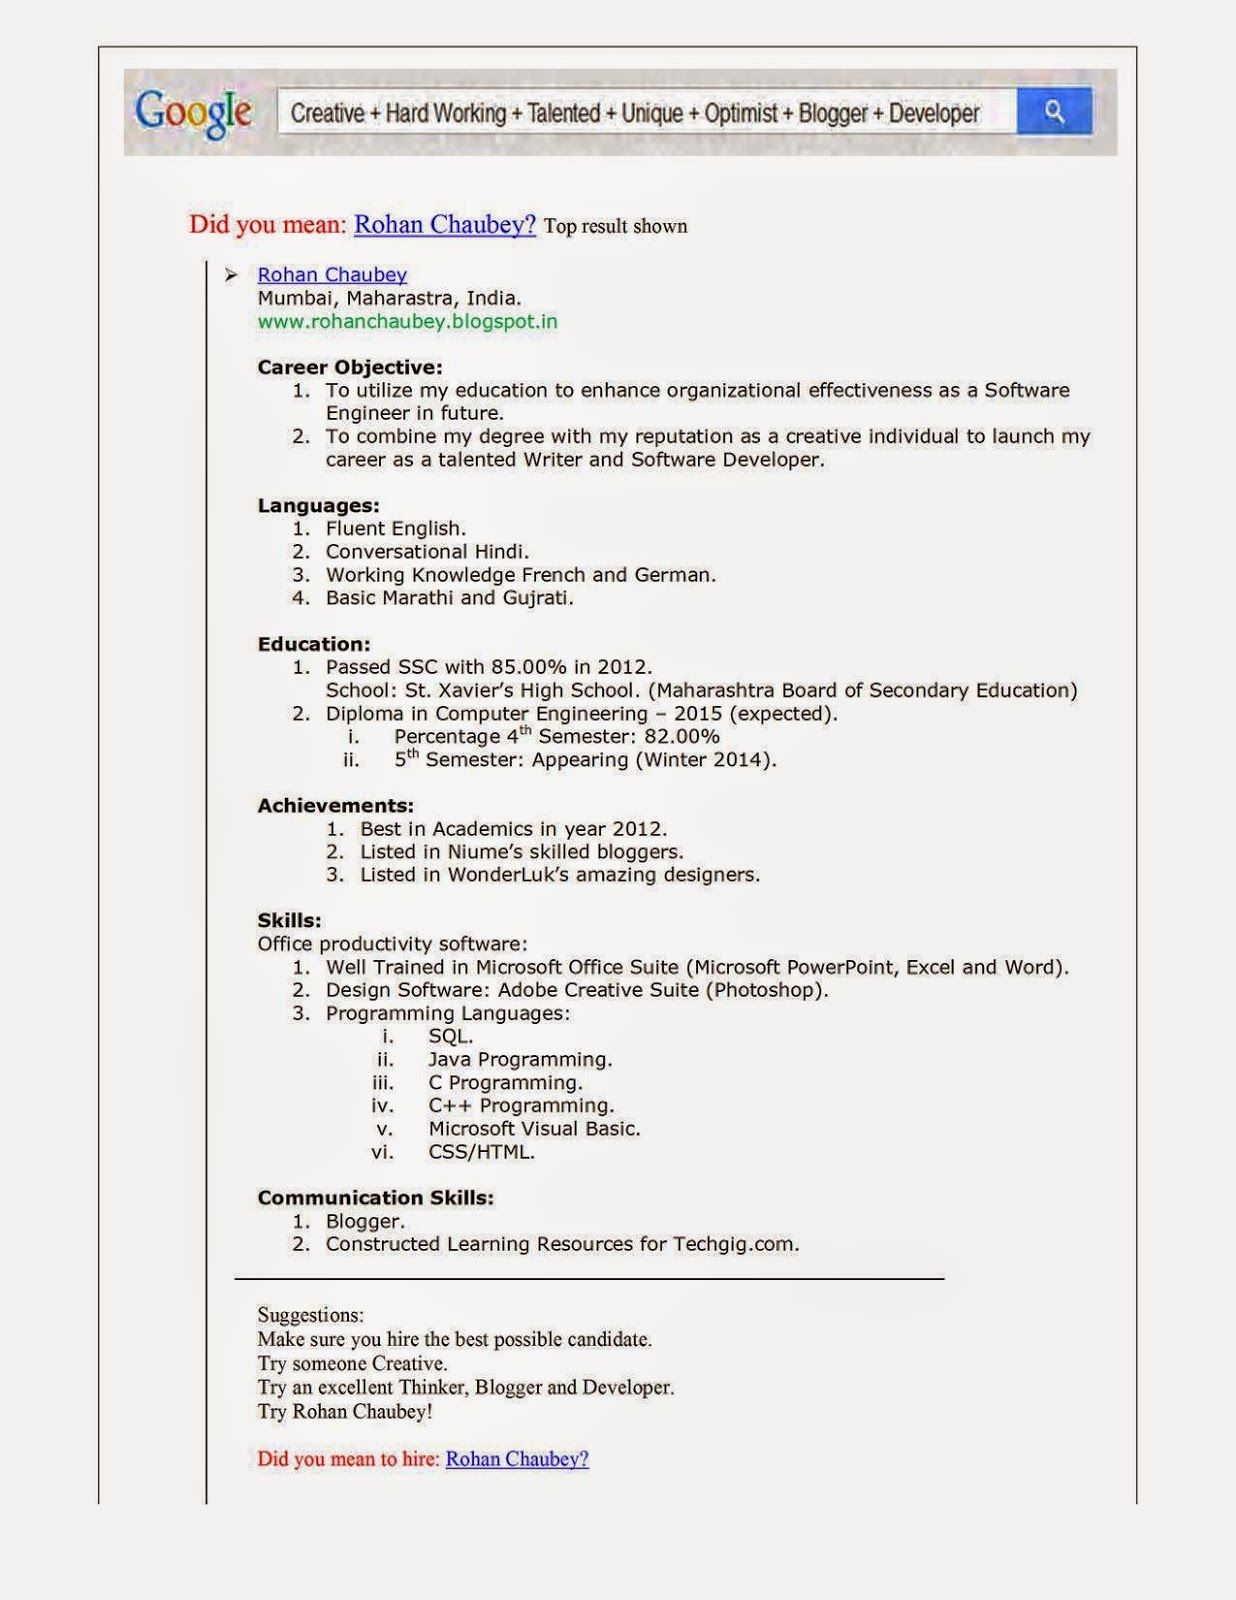 Pin By Resumejob On Resume Job Job Resume Resume Job Resume Format